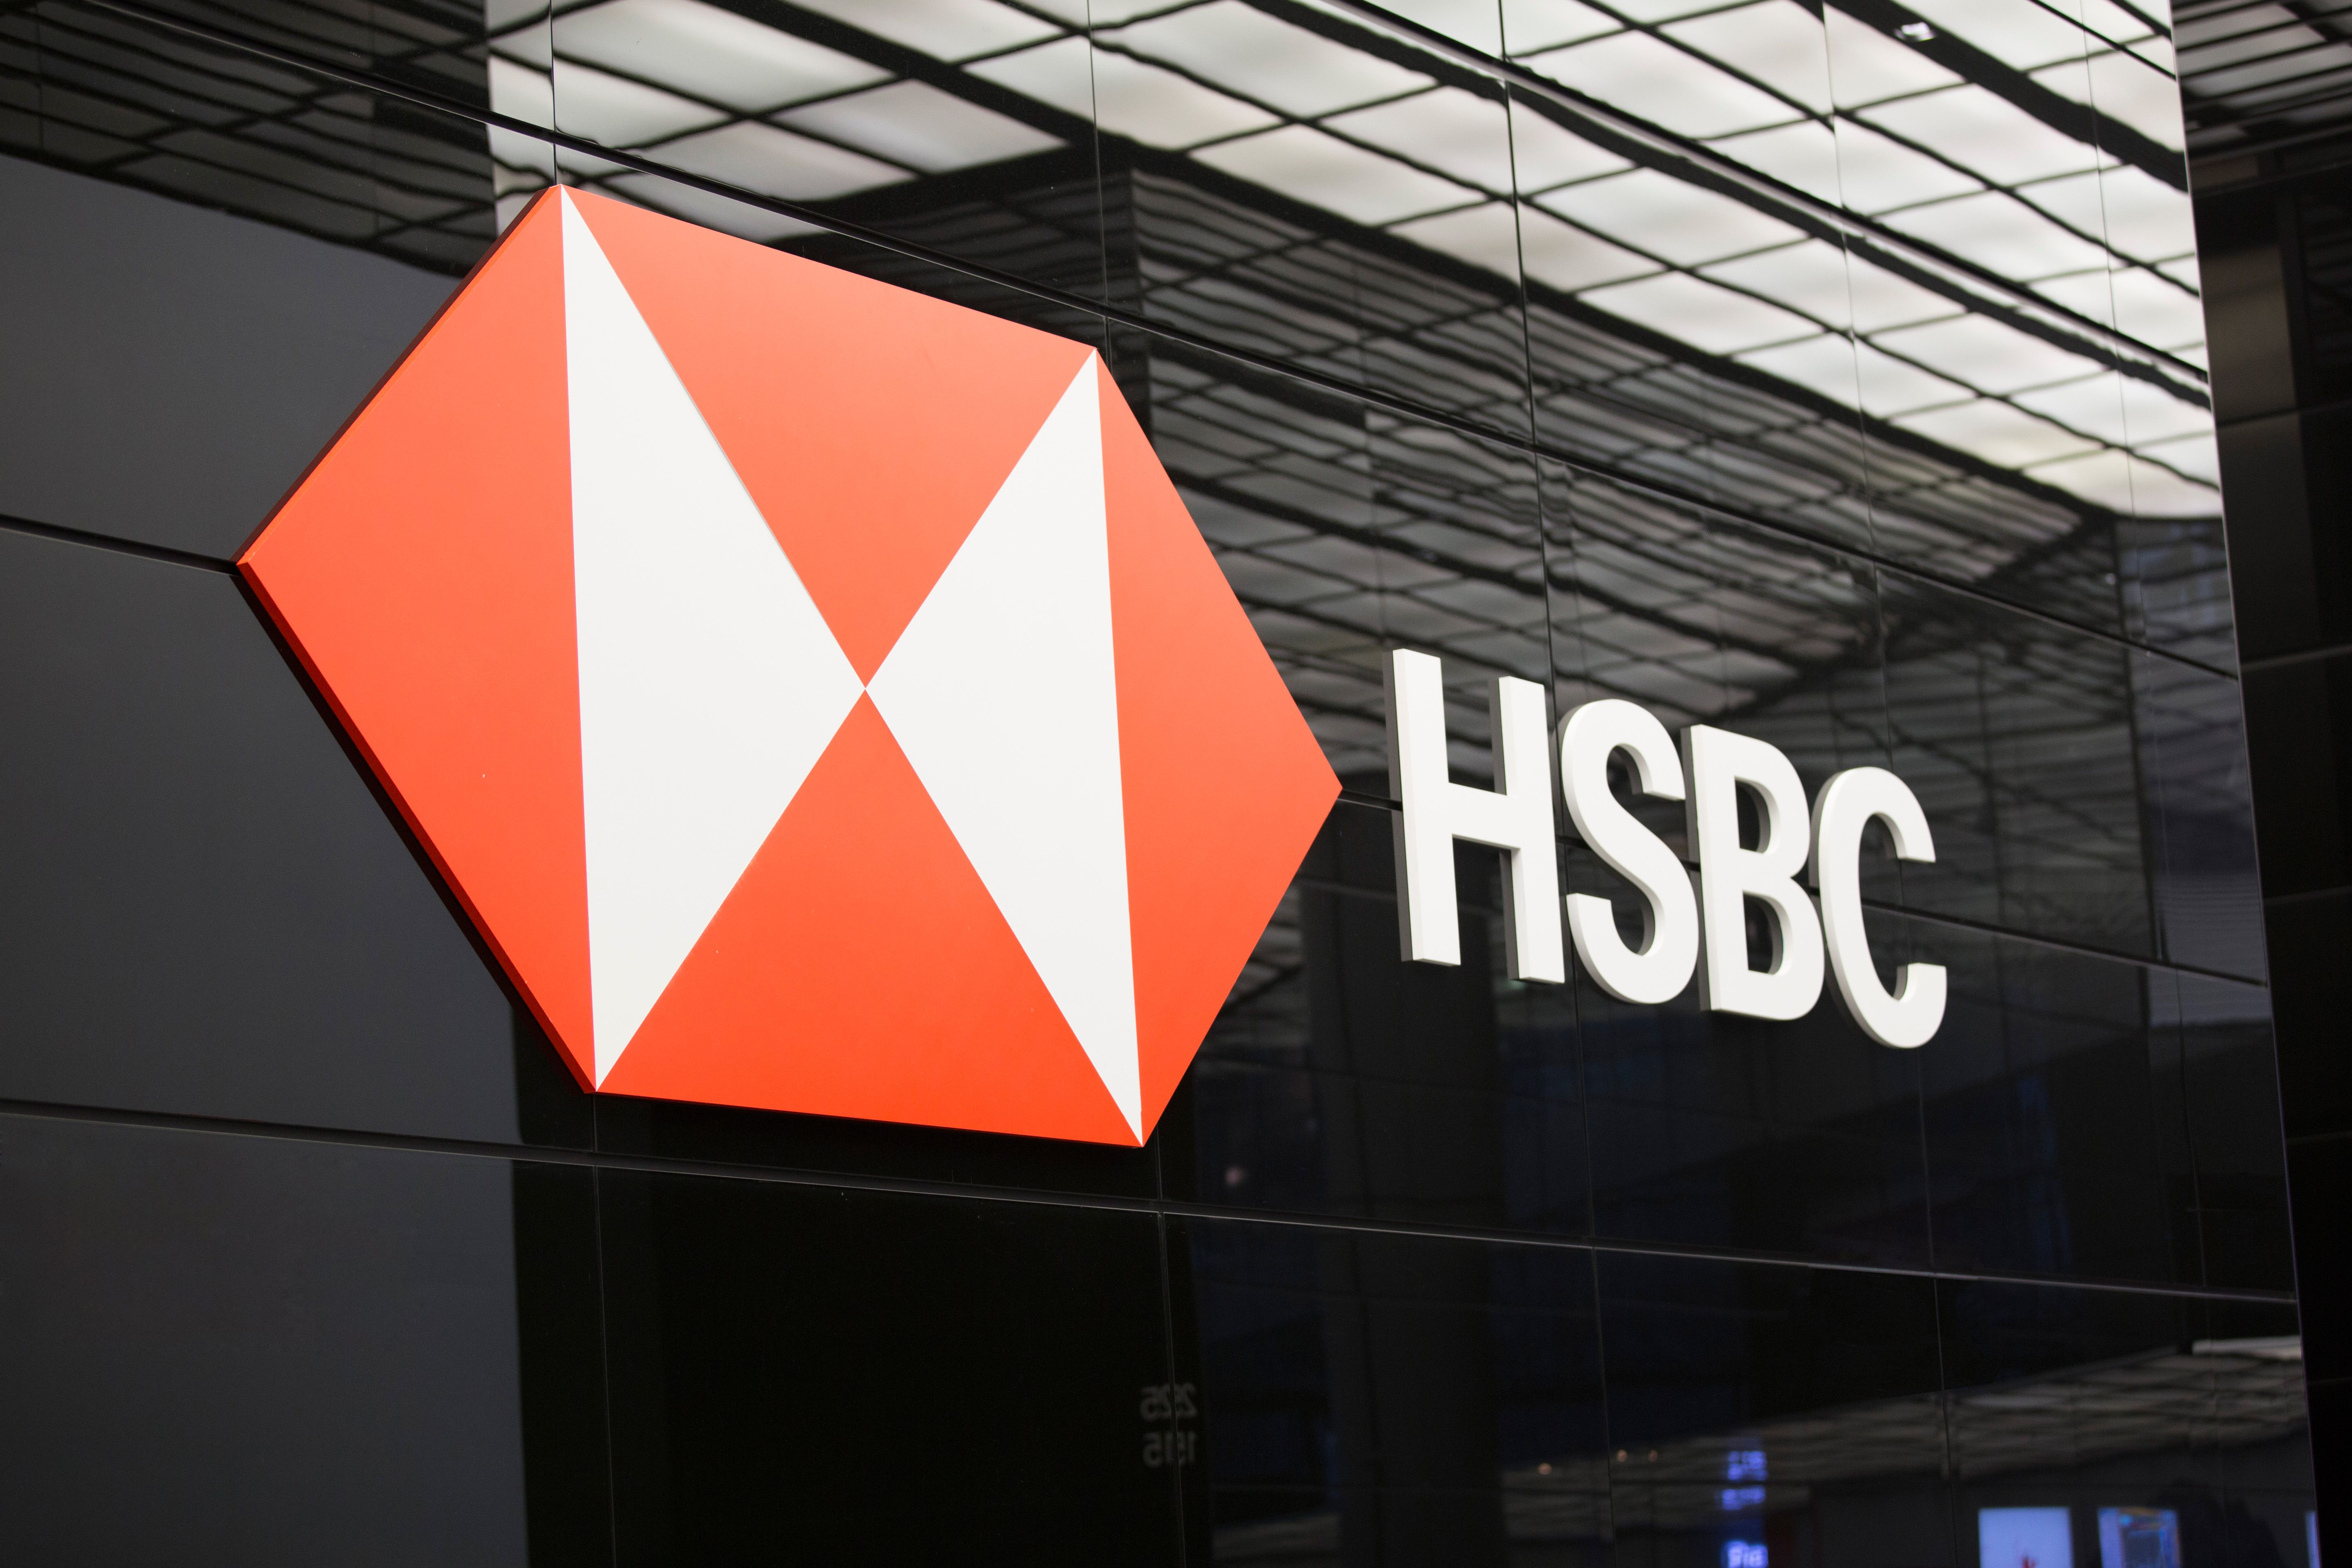 HSBC Logo - Media gallery | HSBC Holdings plc